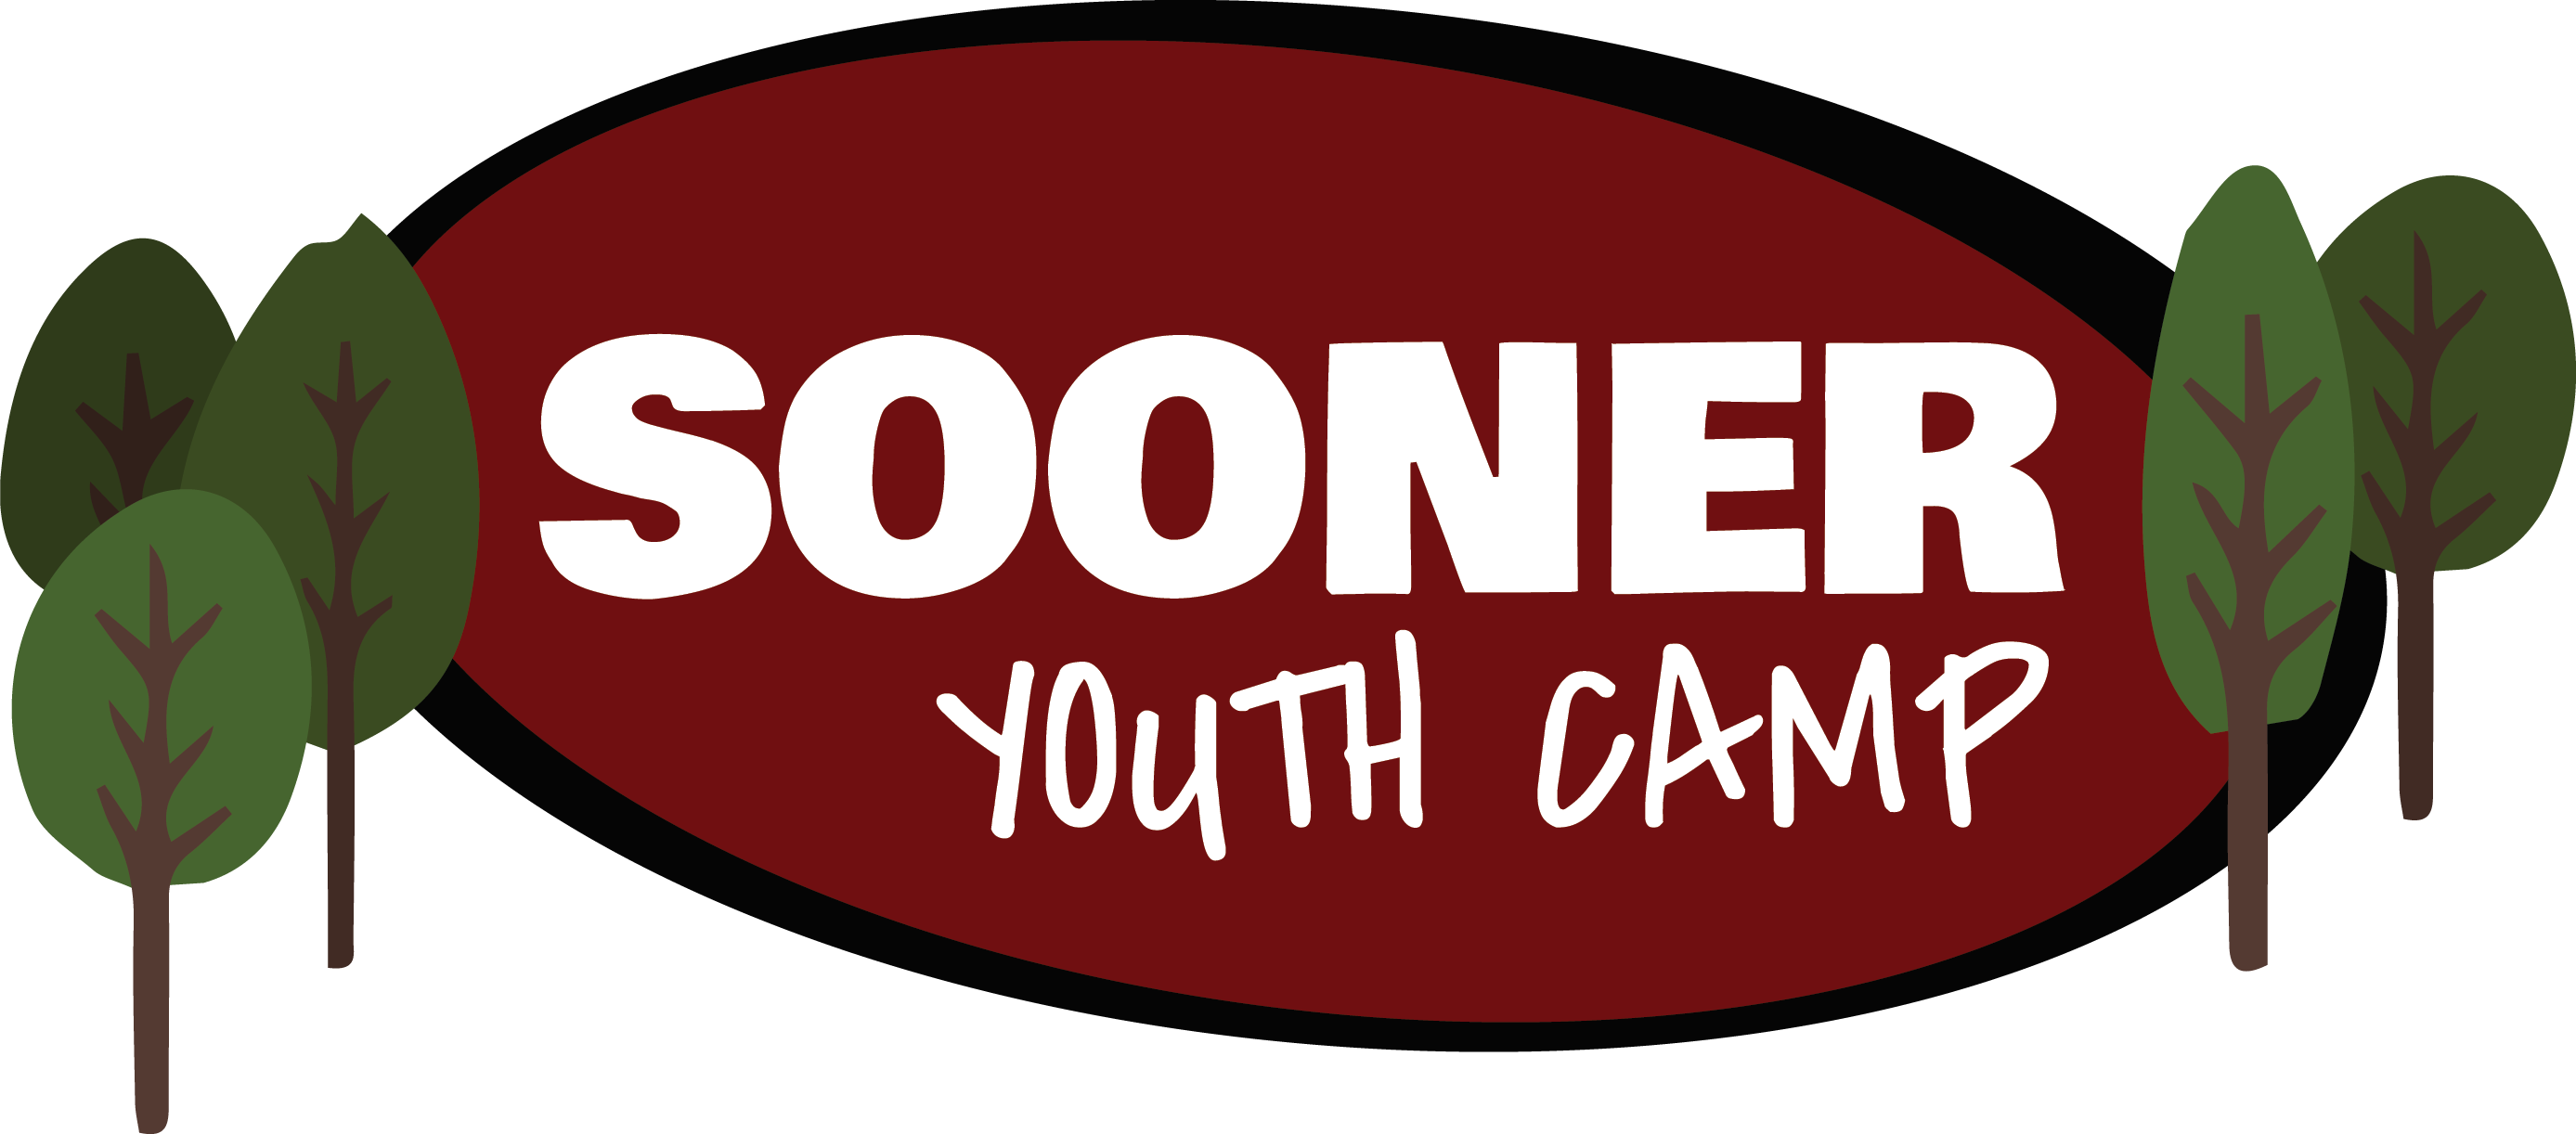 Sooner Youth Camp